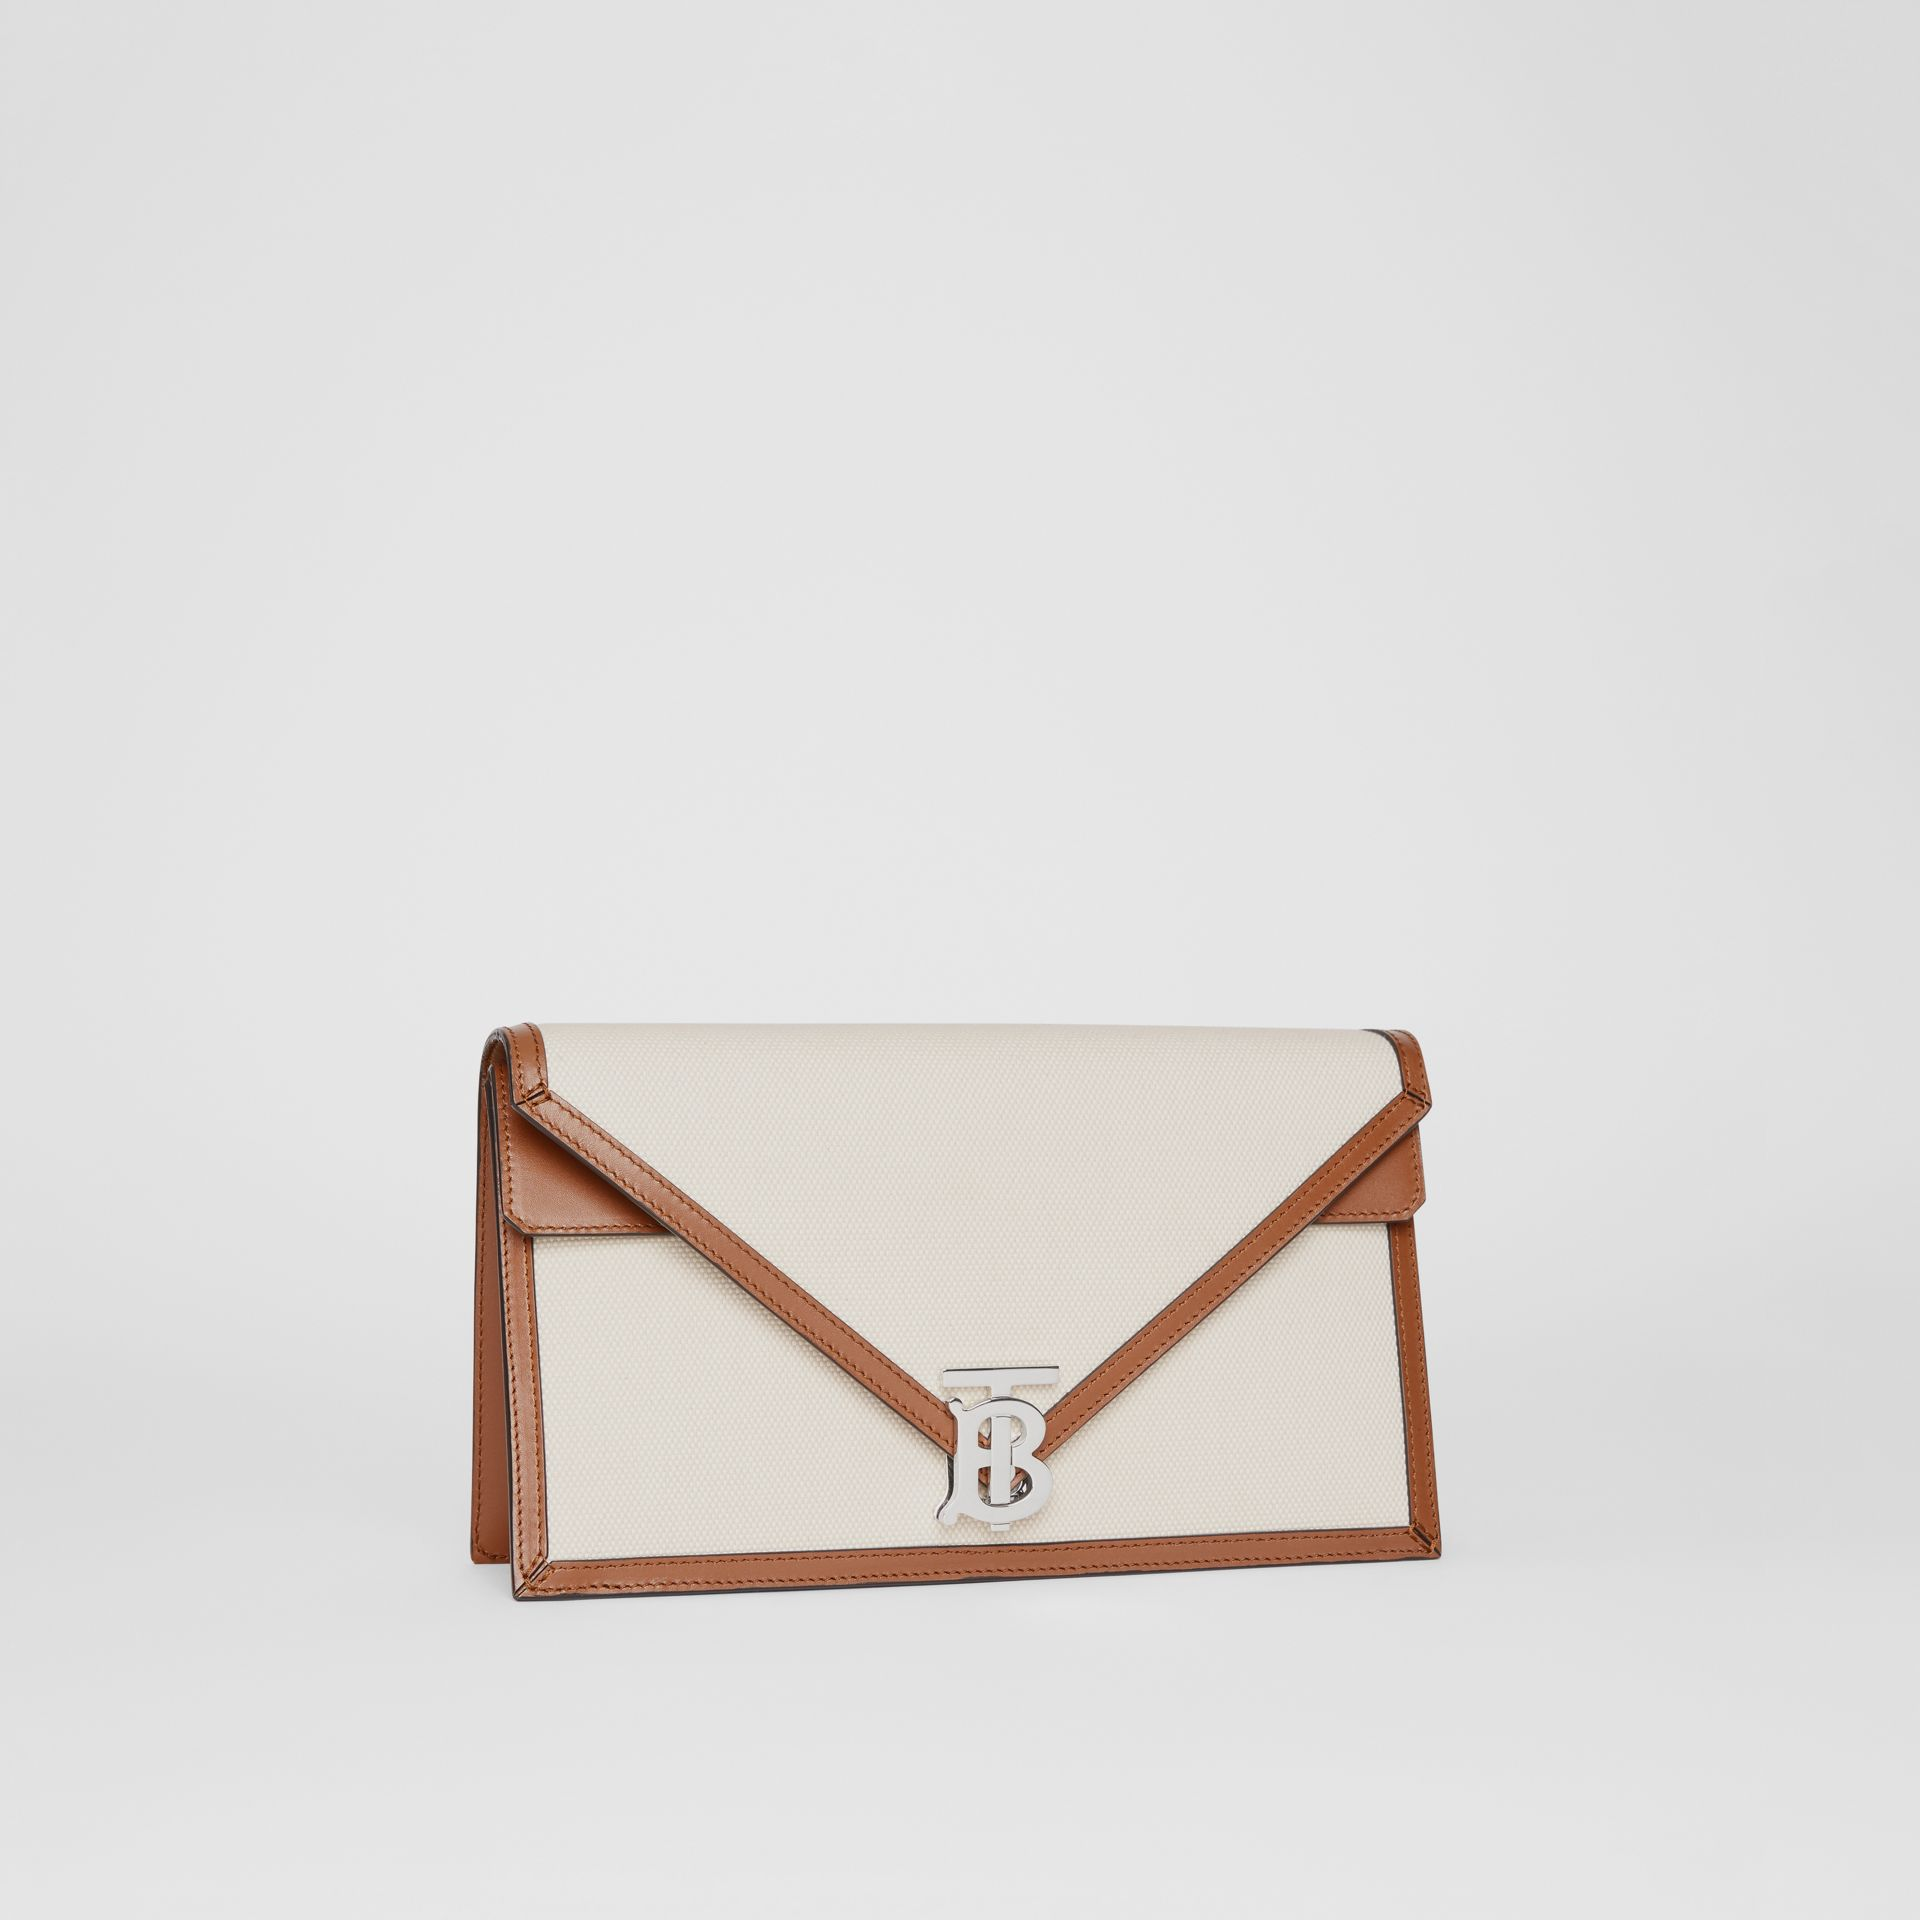 Small Canvas and Leather TB Envelope Clutch in Natural - Women | Burberry - gallery image 5